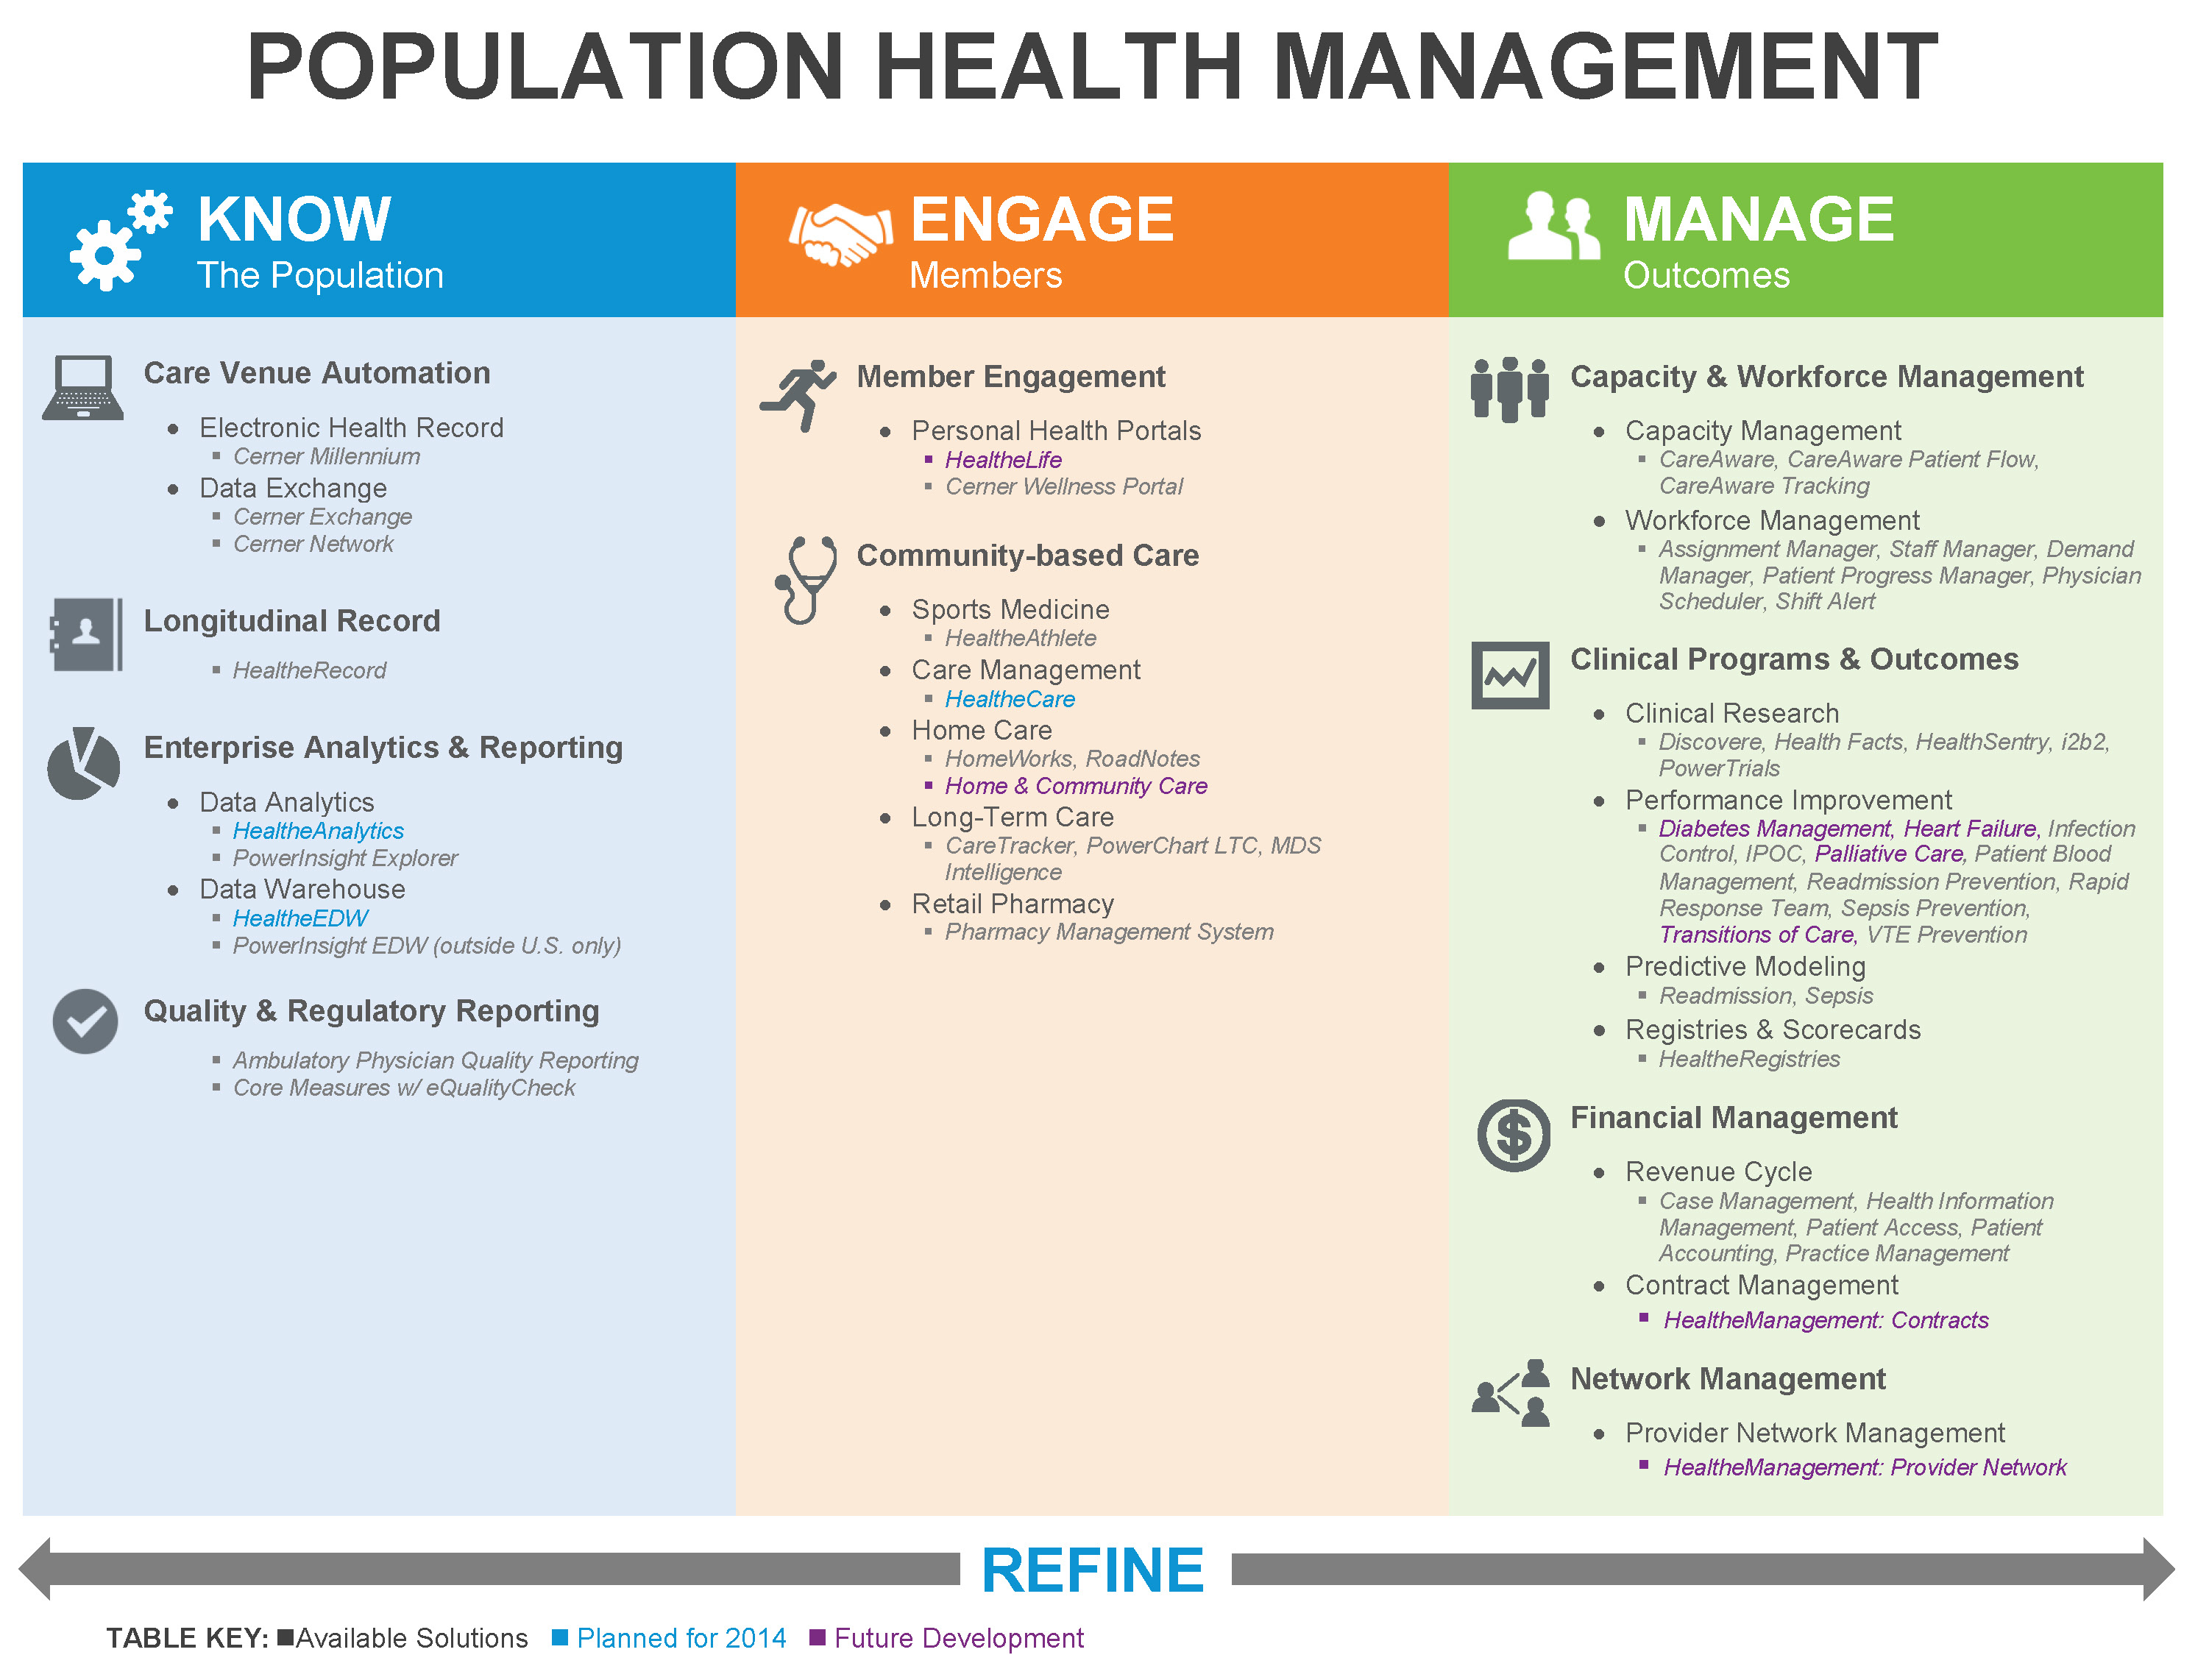 Cerner Health Emr Population Health Management Population Health Management Healthcare Technology Electronic Health Records